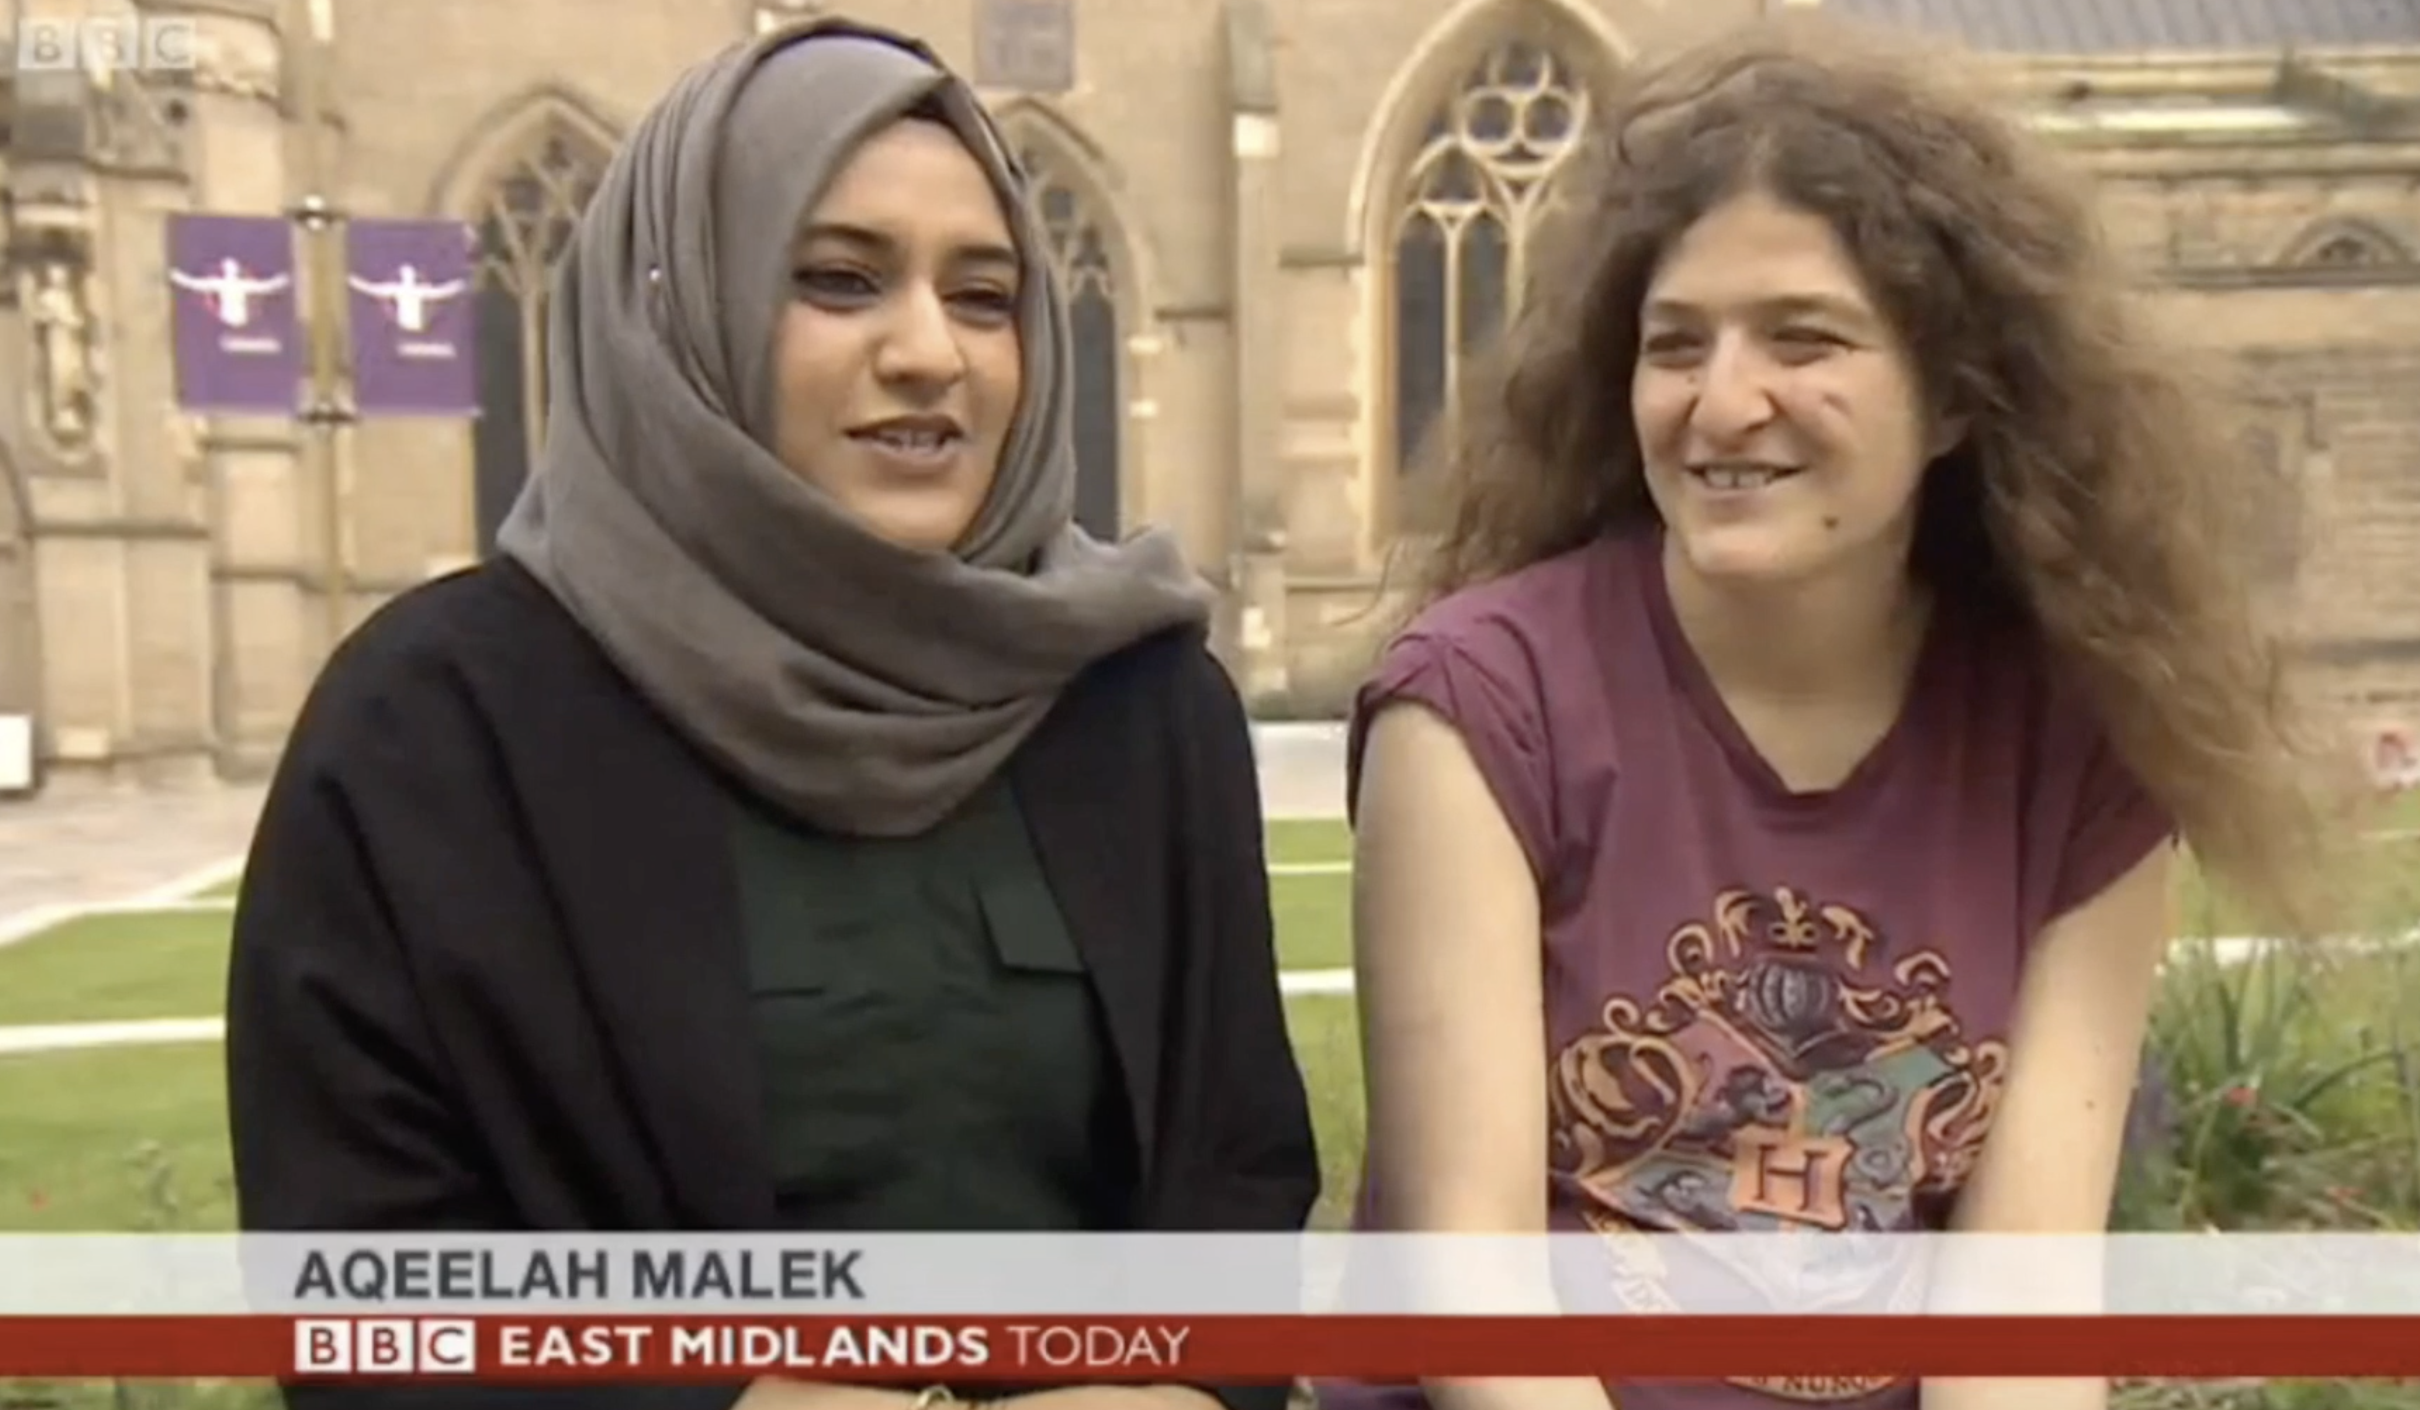 BBC East Midlands Today: Great Get Together